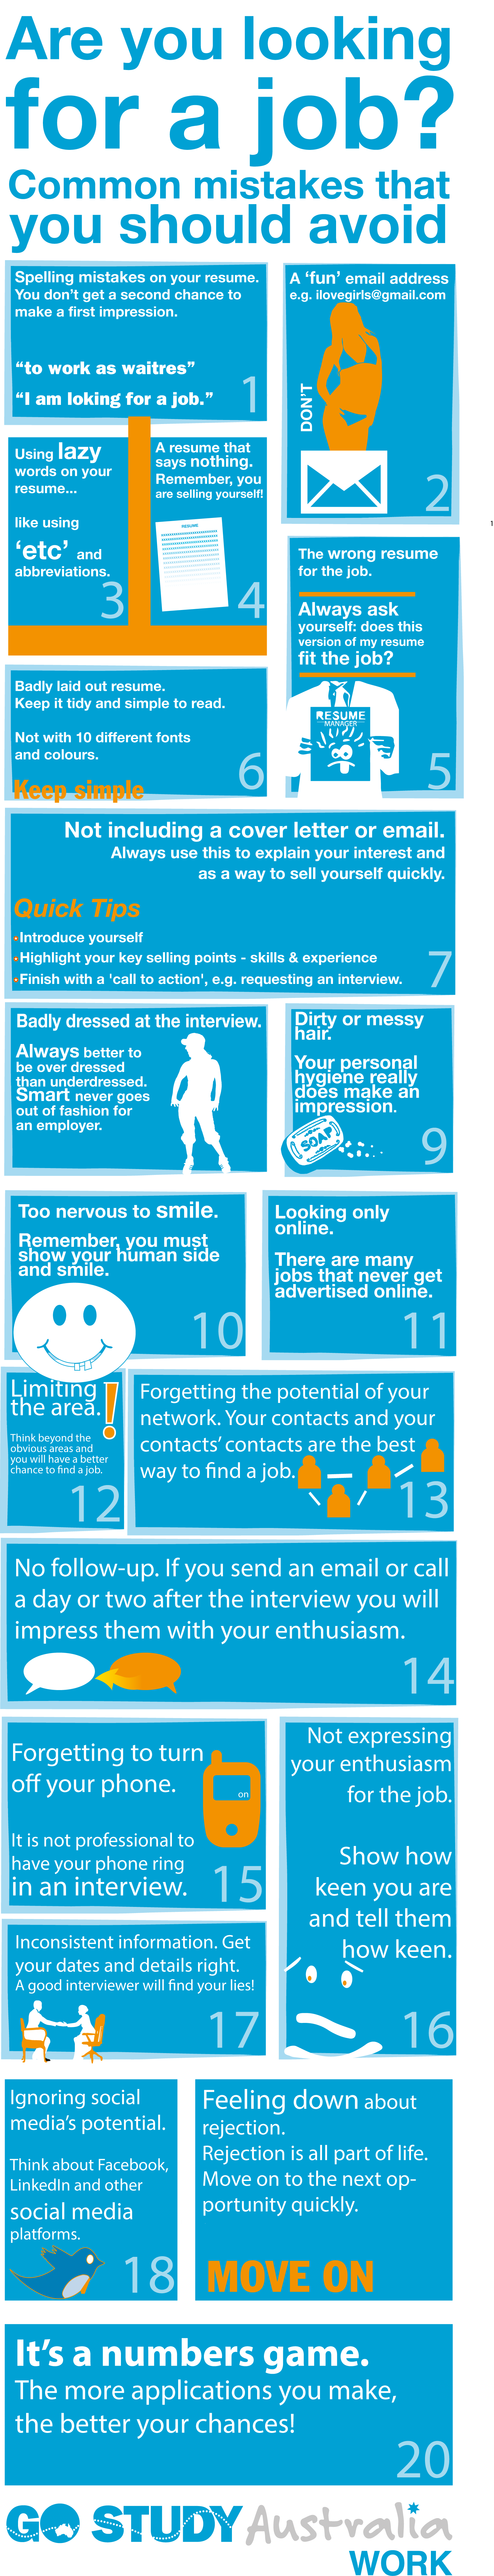 20 resume and job hunting mistakes - Infographic